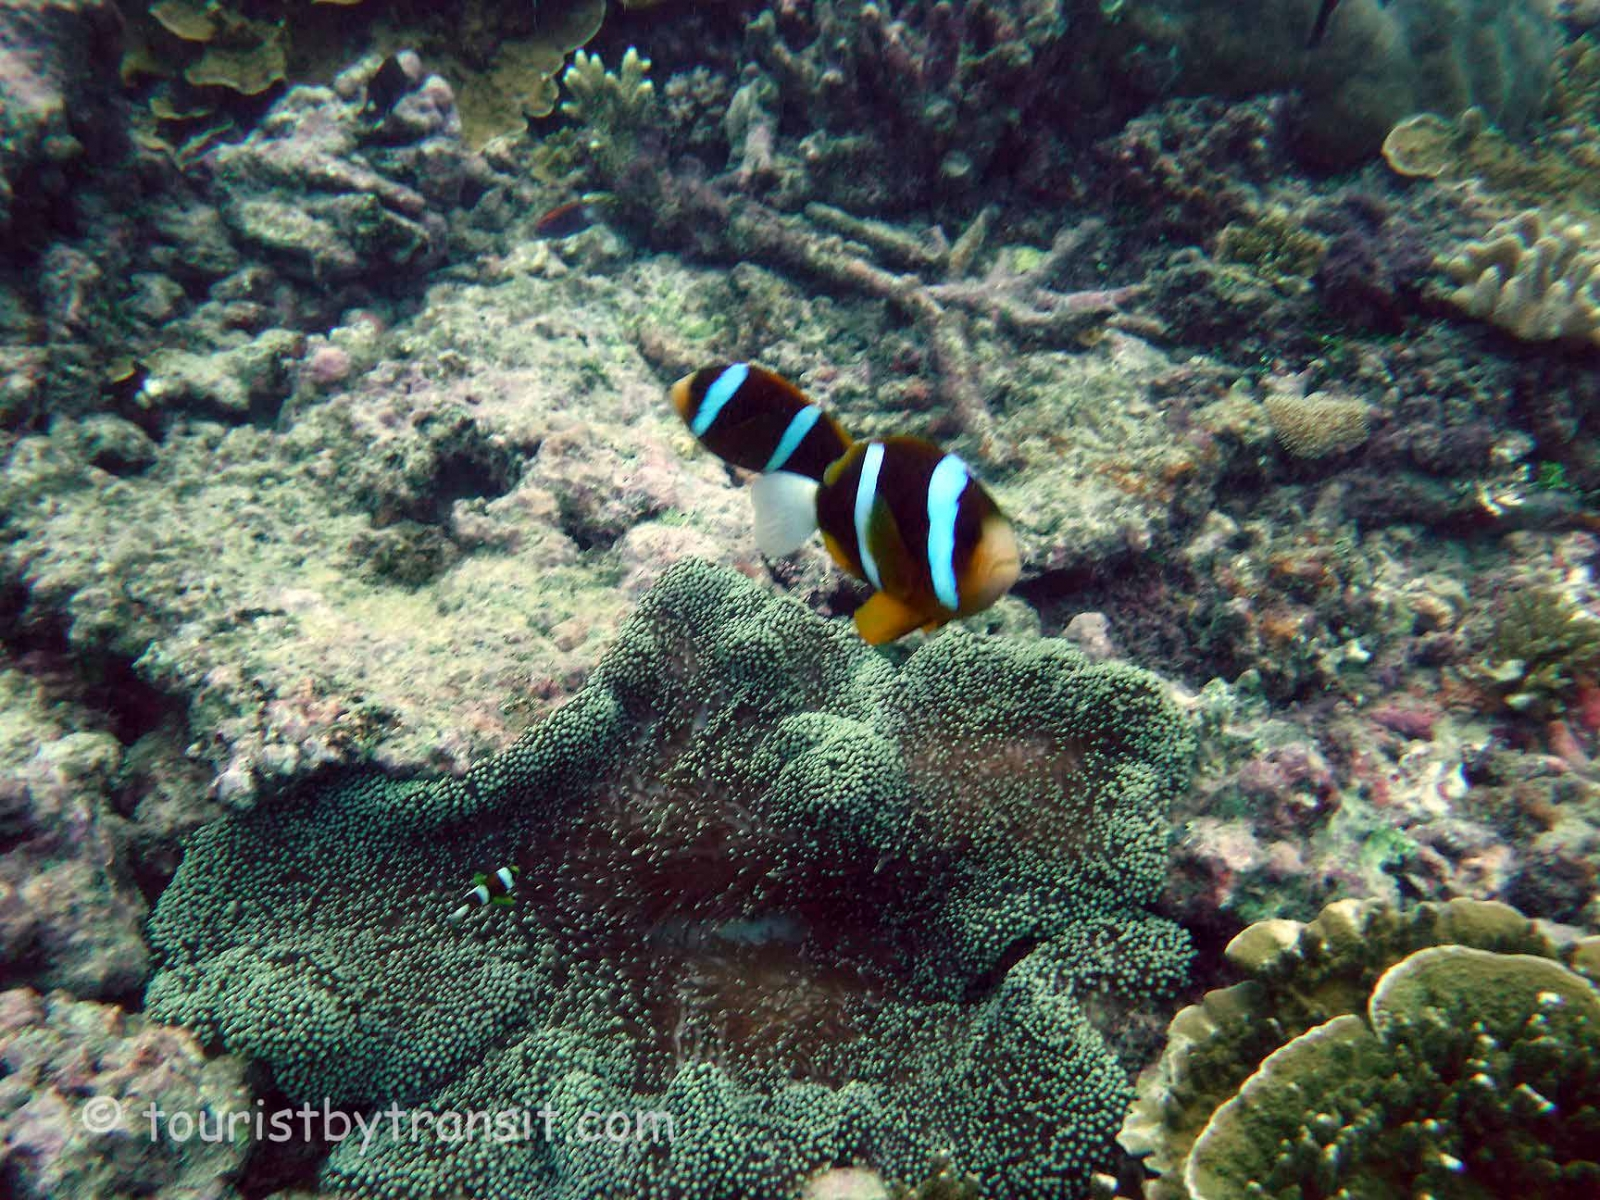 GreatBarrierReef-190322-07